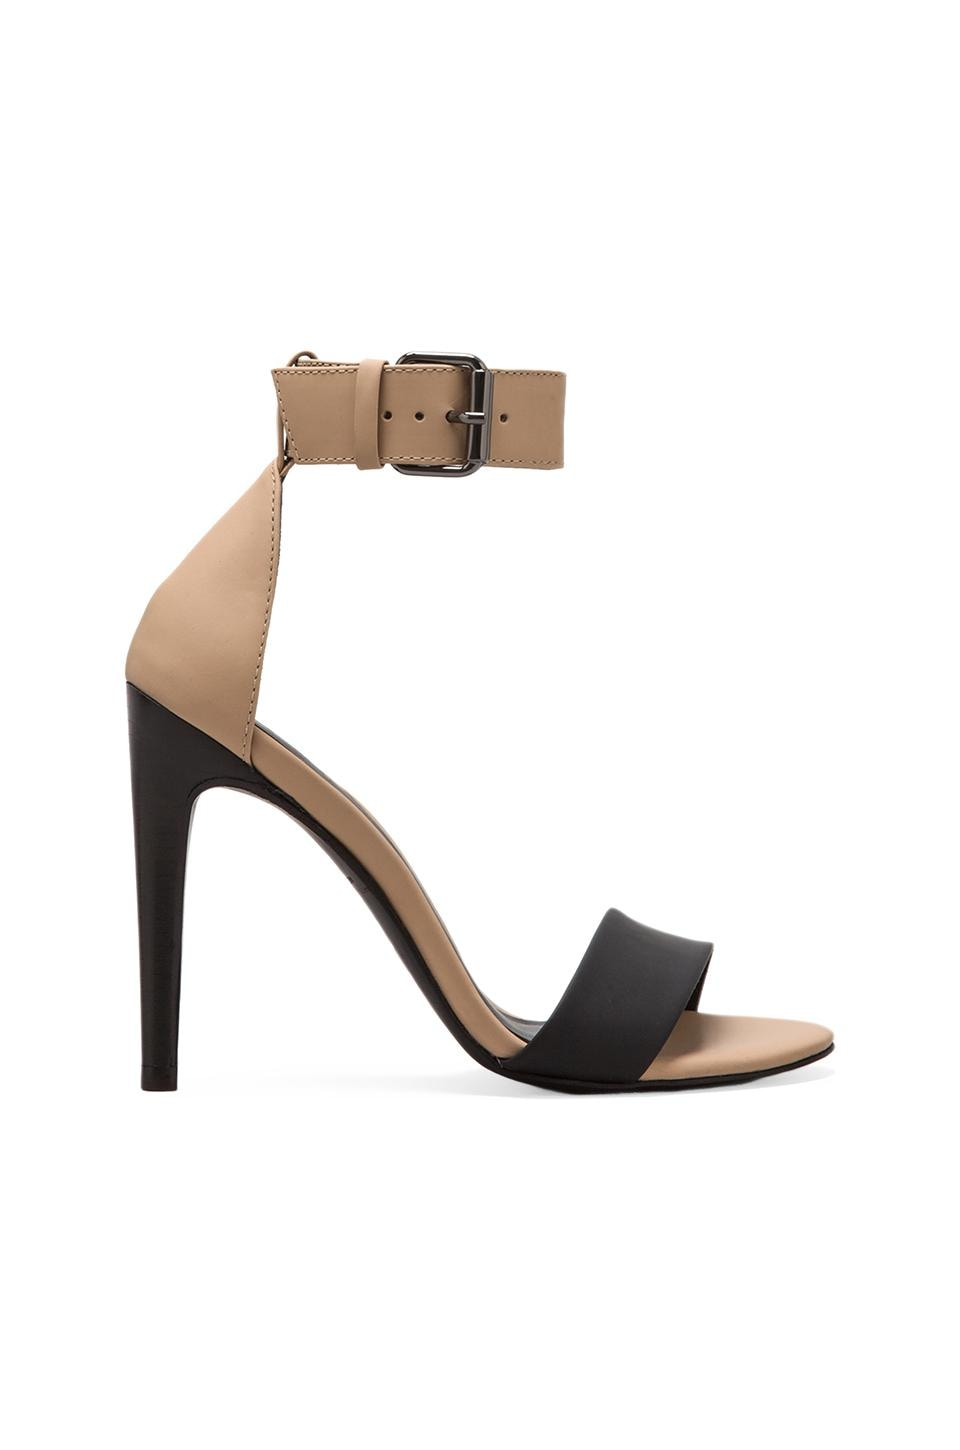 Tibi Carine in Nude/Black